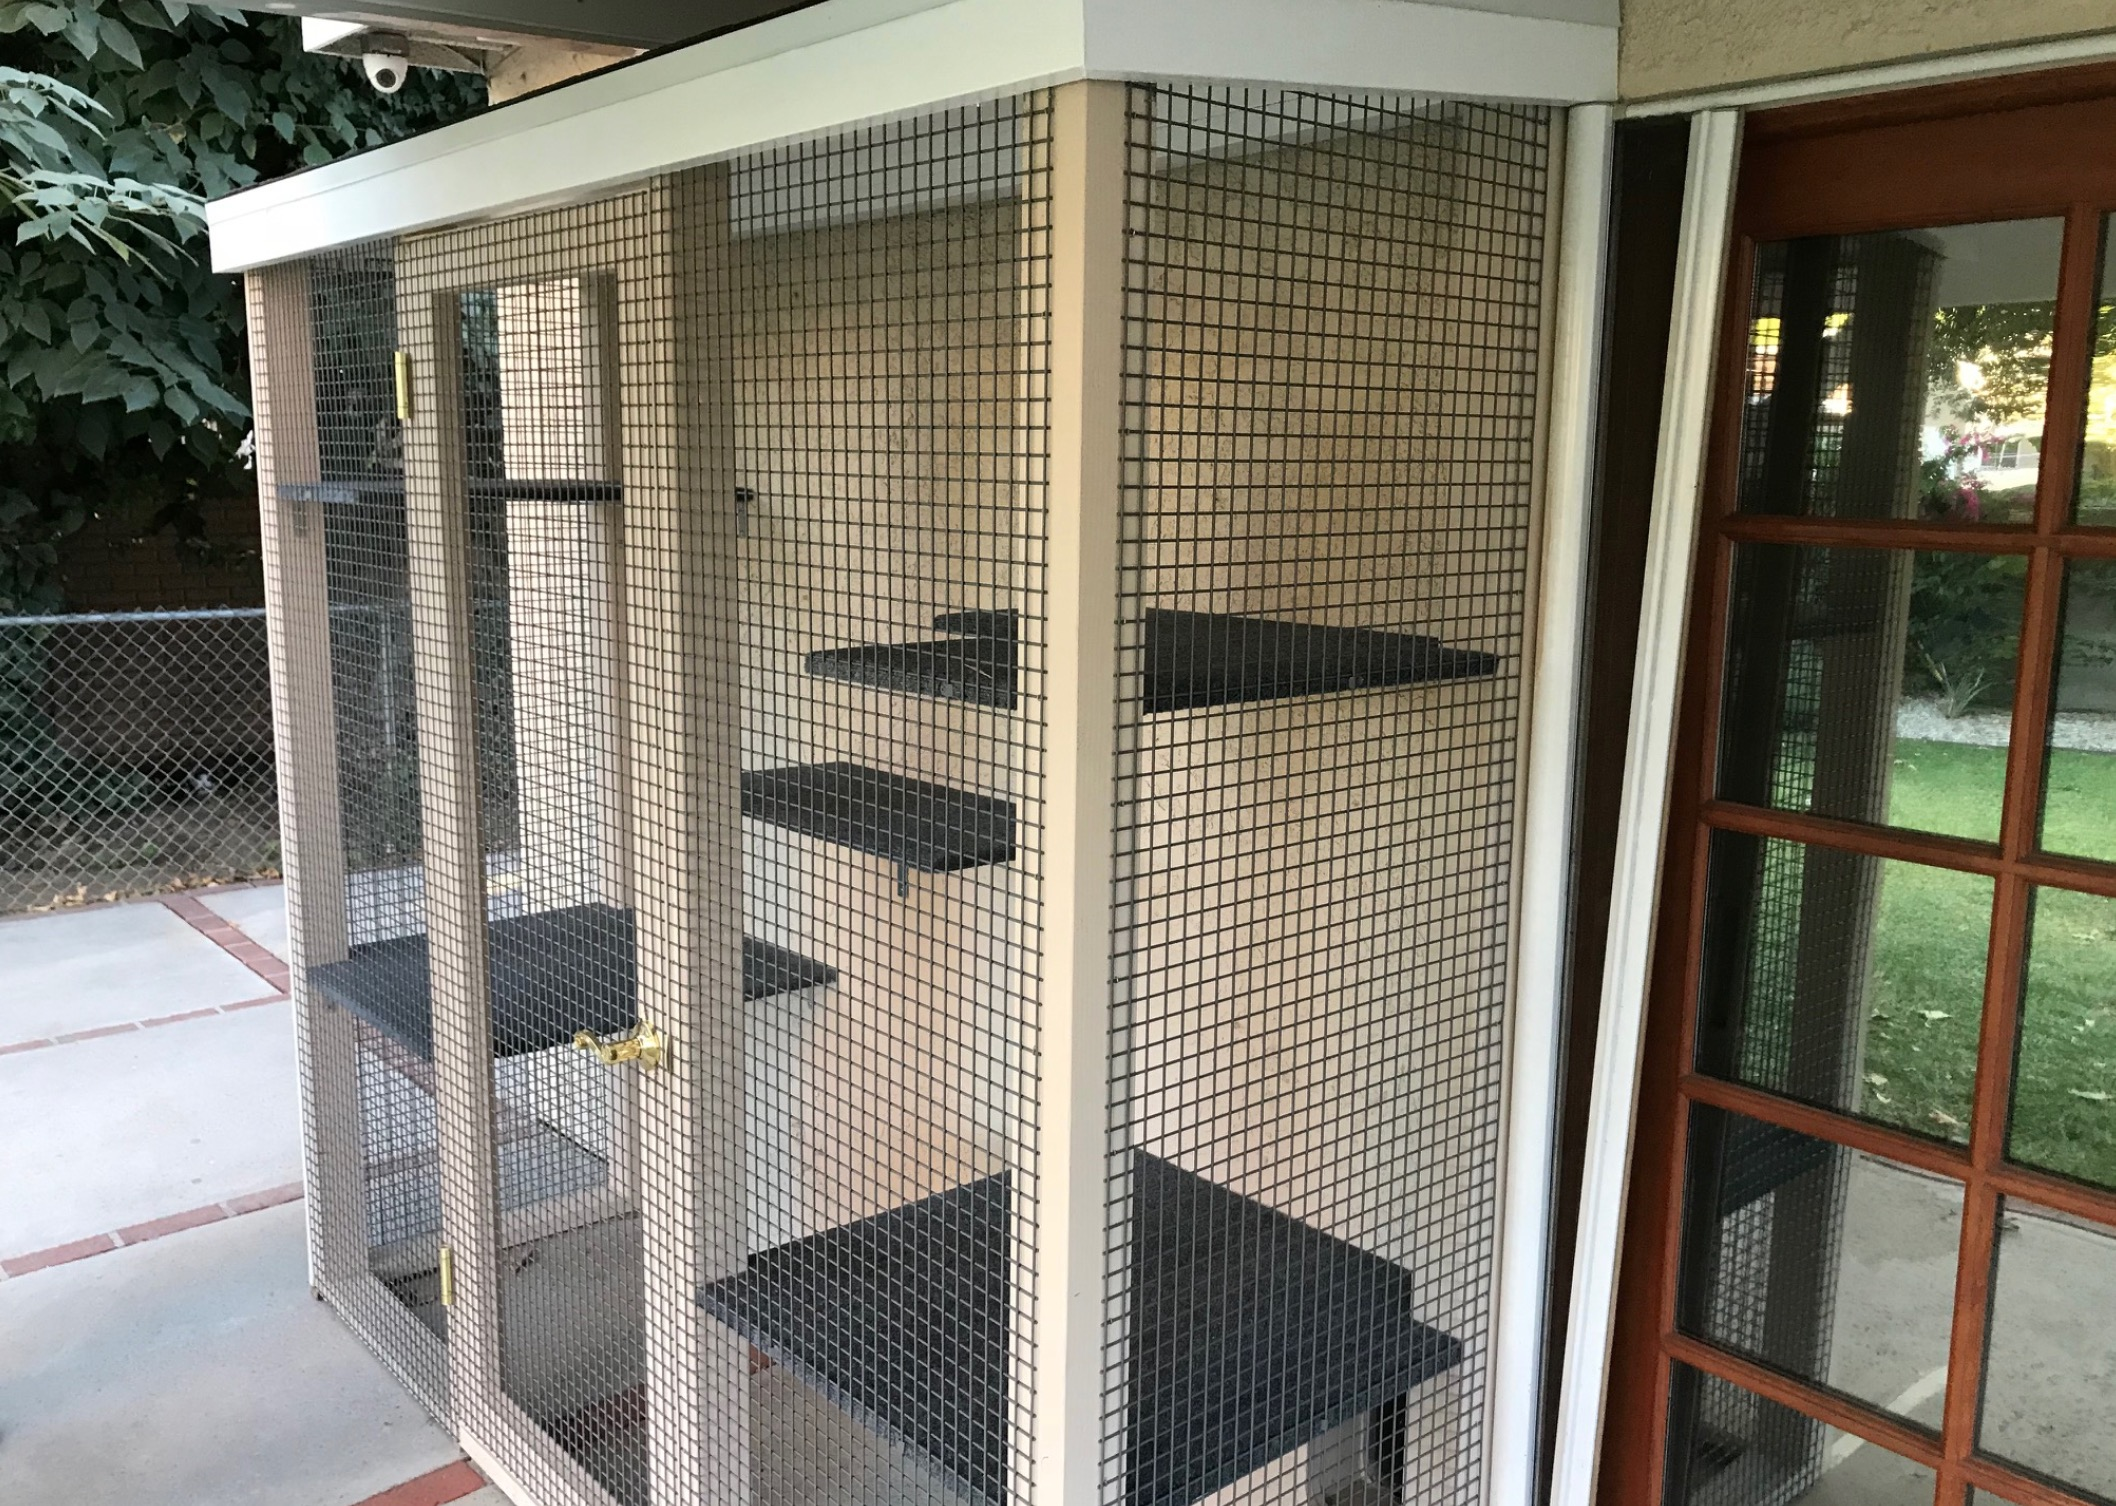 North Hills Catio